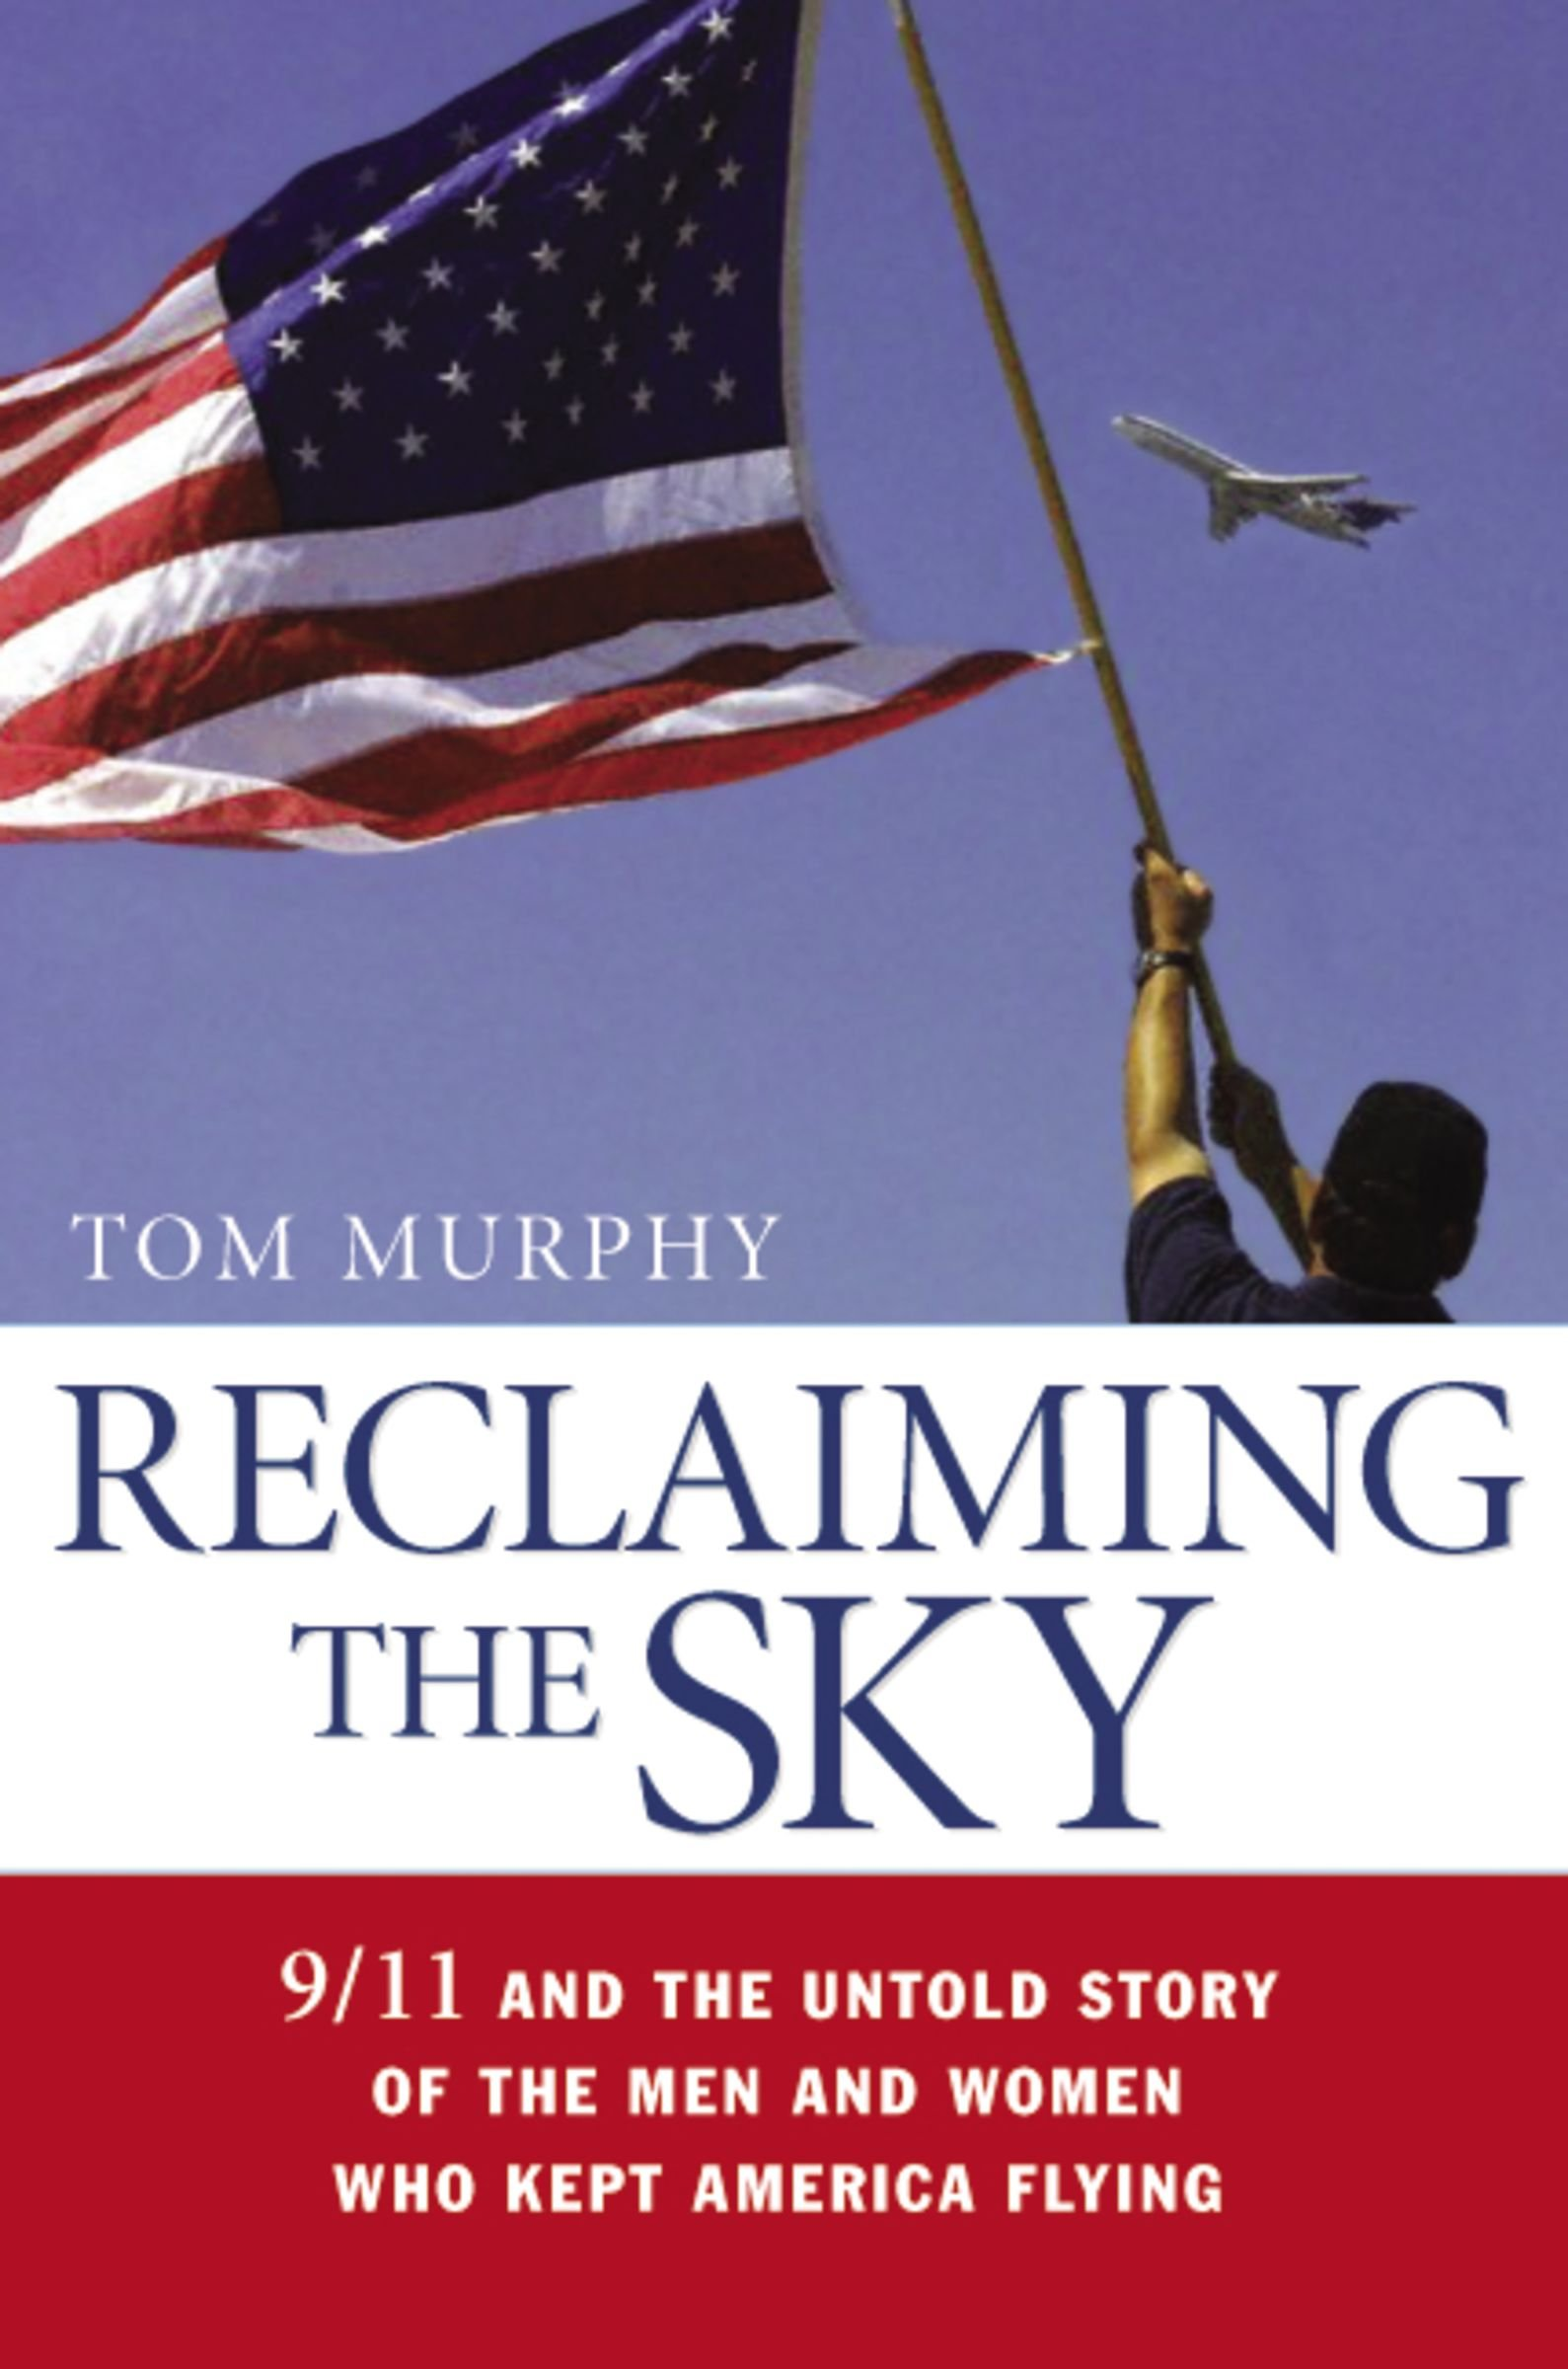 Reclaiming the Sky: 9/11 and the Untold Story of the Men and Women Who Kept America Flying PDF